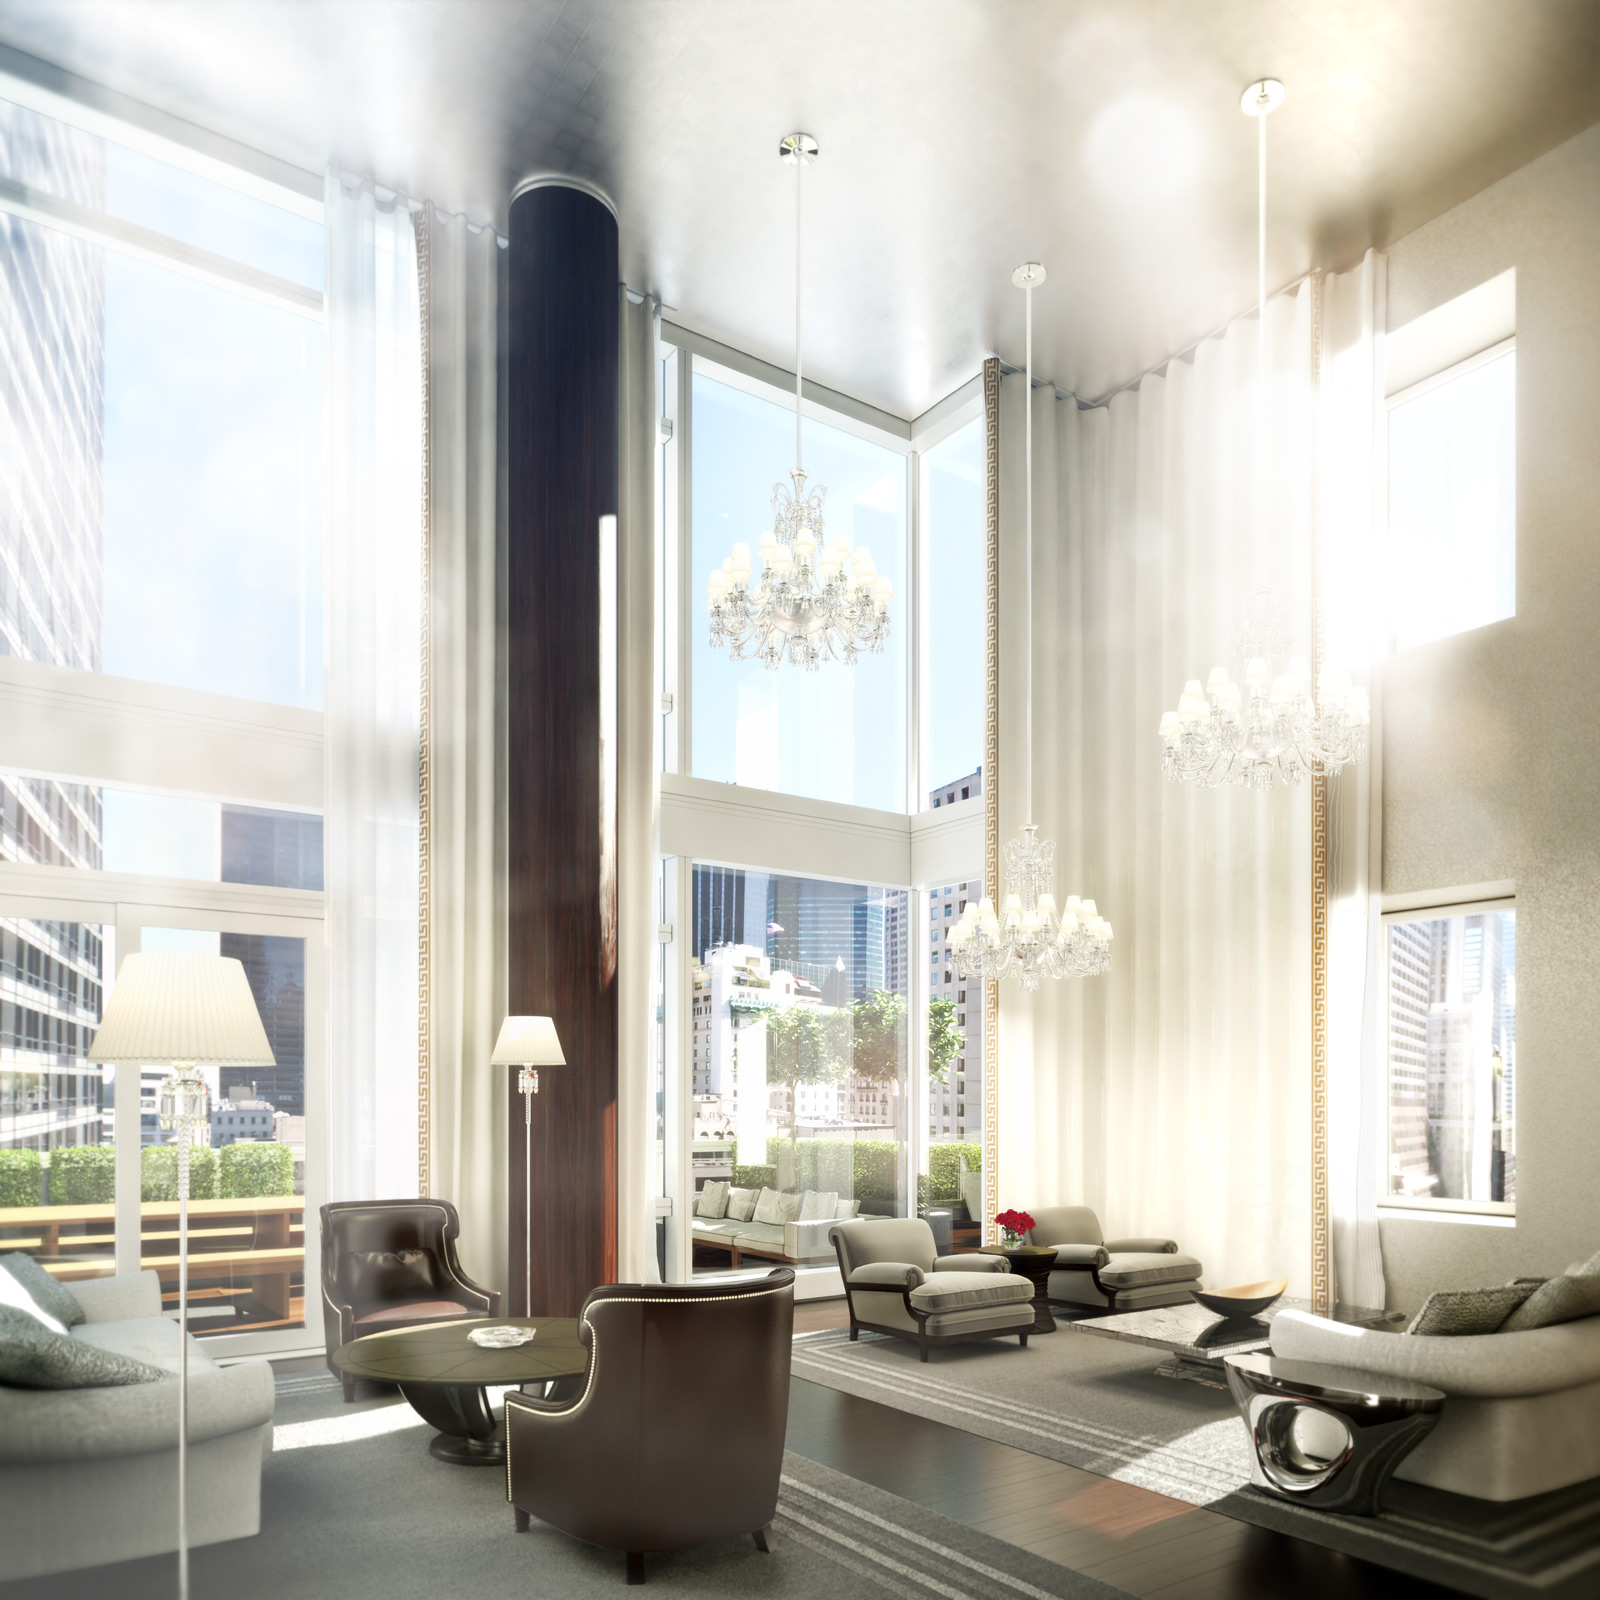 13 Stunning Apartments In New York: Baccarat Hotel And Residences, New York Will Open In 2014